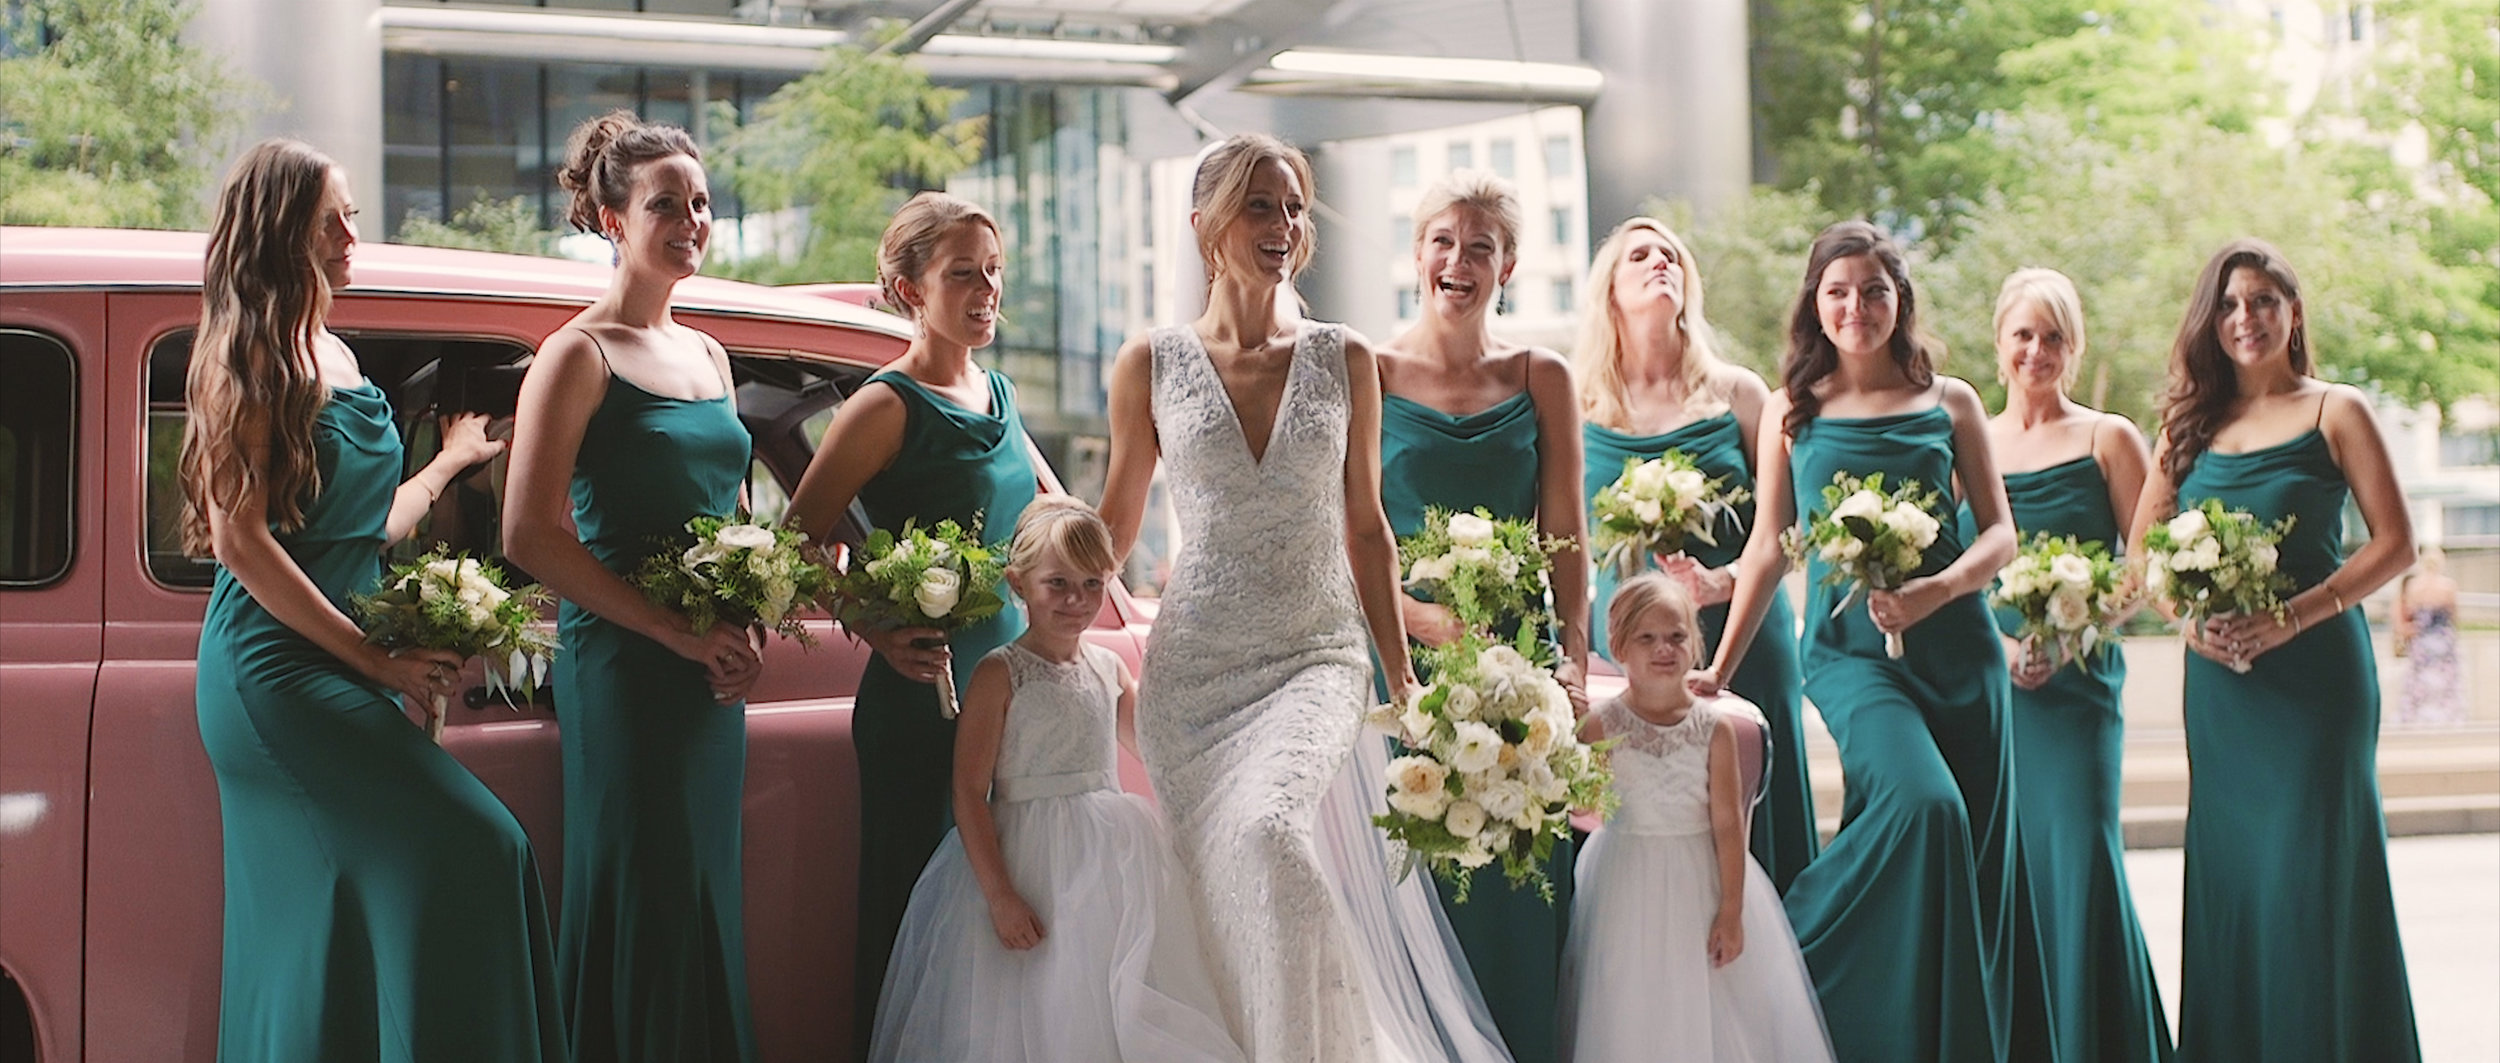 Bride and bridesmaids at the Langham Chicago before downtown wedding reception at the Field Museum. Chicago Wedding Videographer